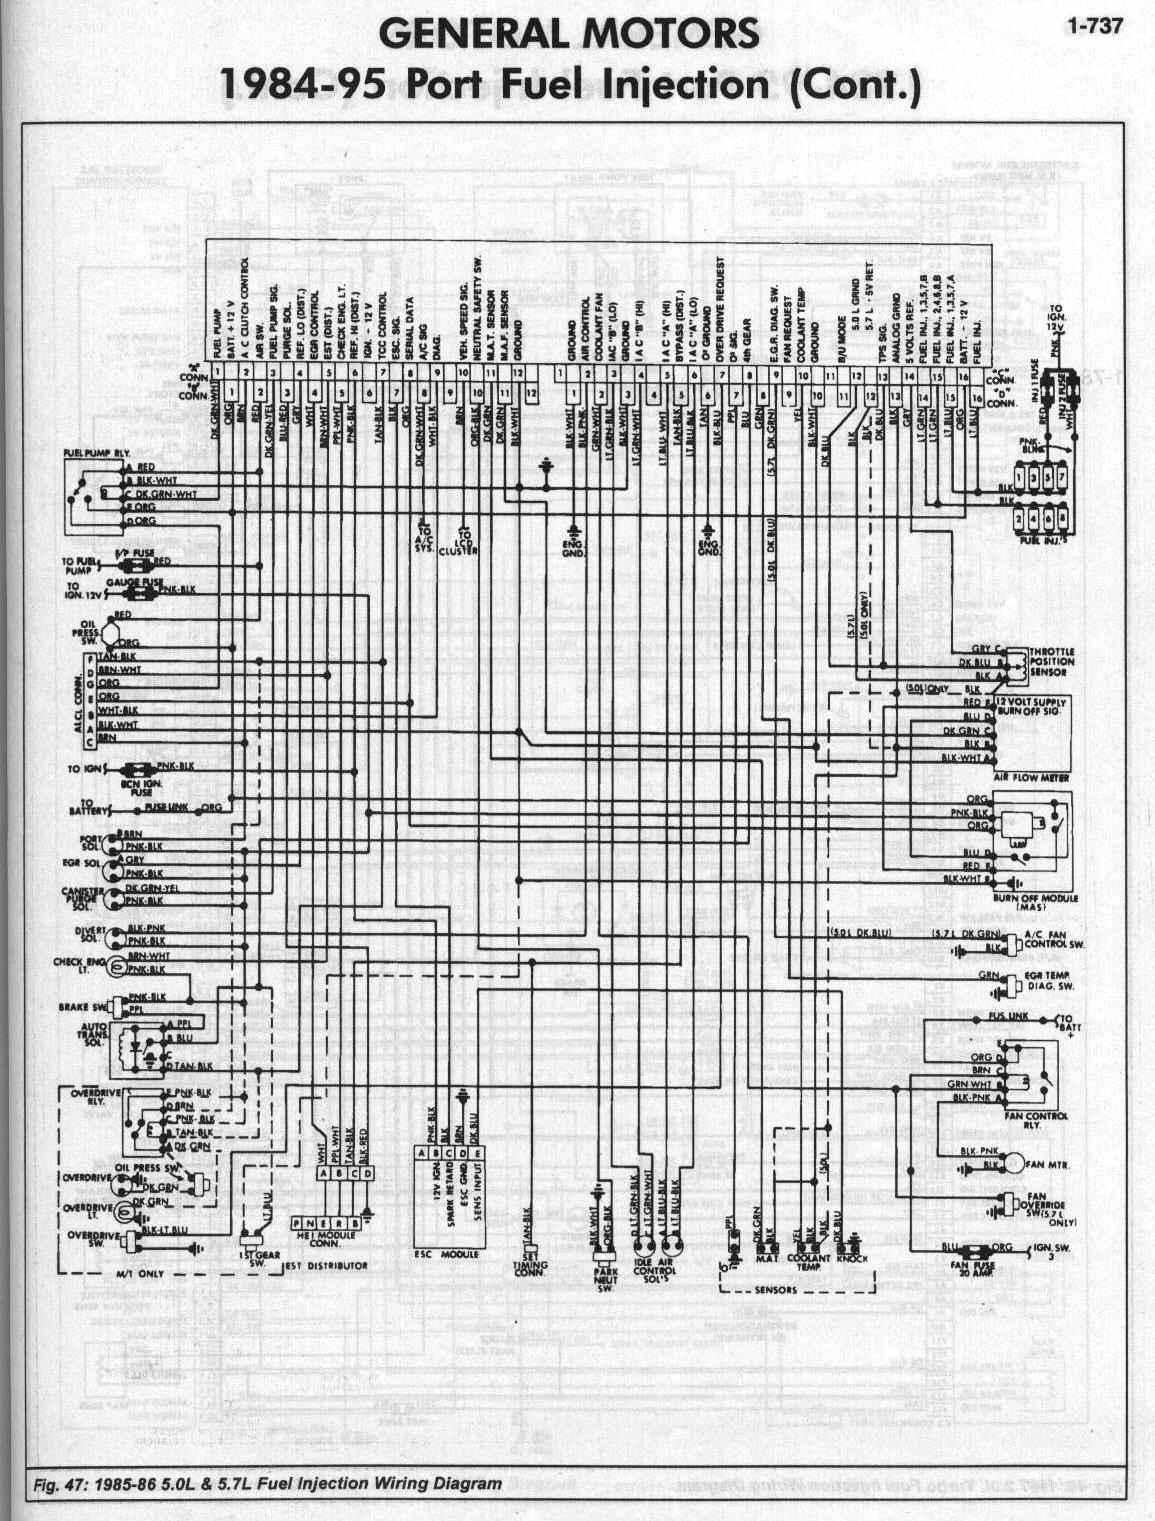 Pleasing 89 Camaro Tpi Wiring Diagram Wiring Library Wiring Digital Resources Inamapmognl